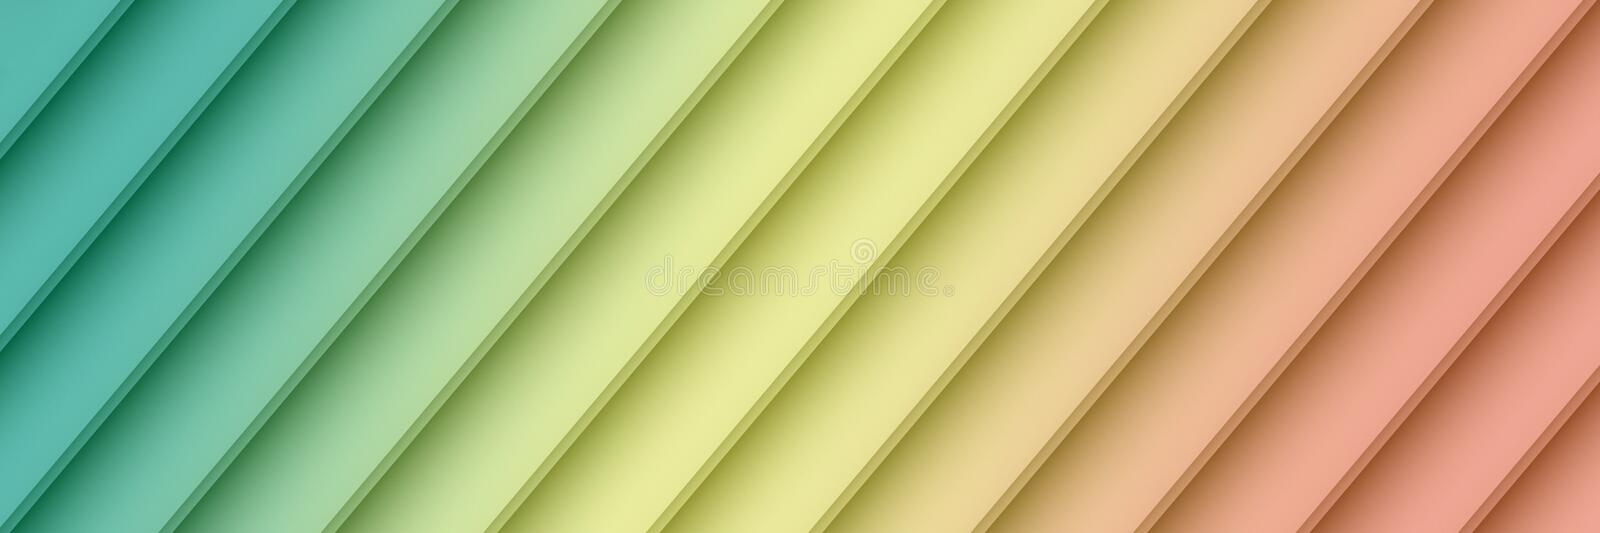 Colorful blue yellow pink geometric diagonal lines abstract banner wallpaper background royalty free illustration